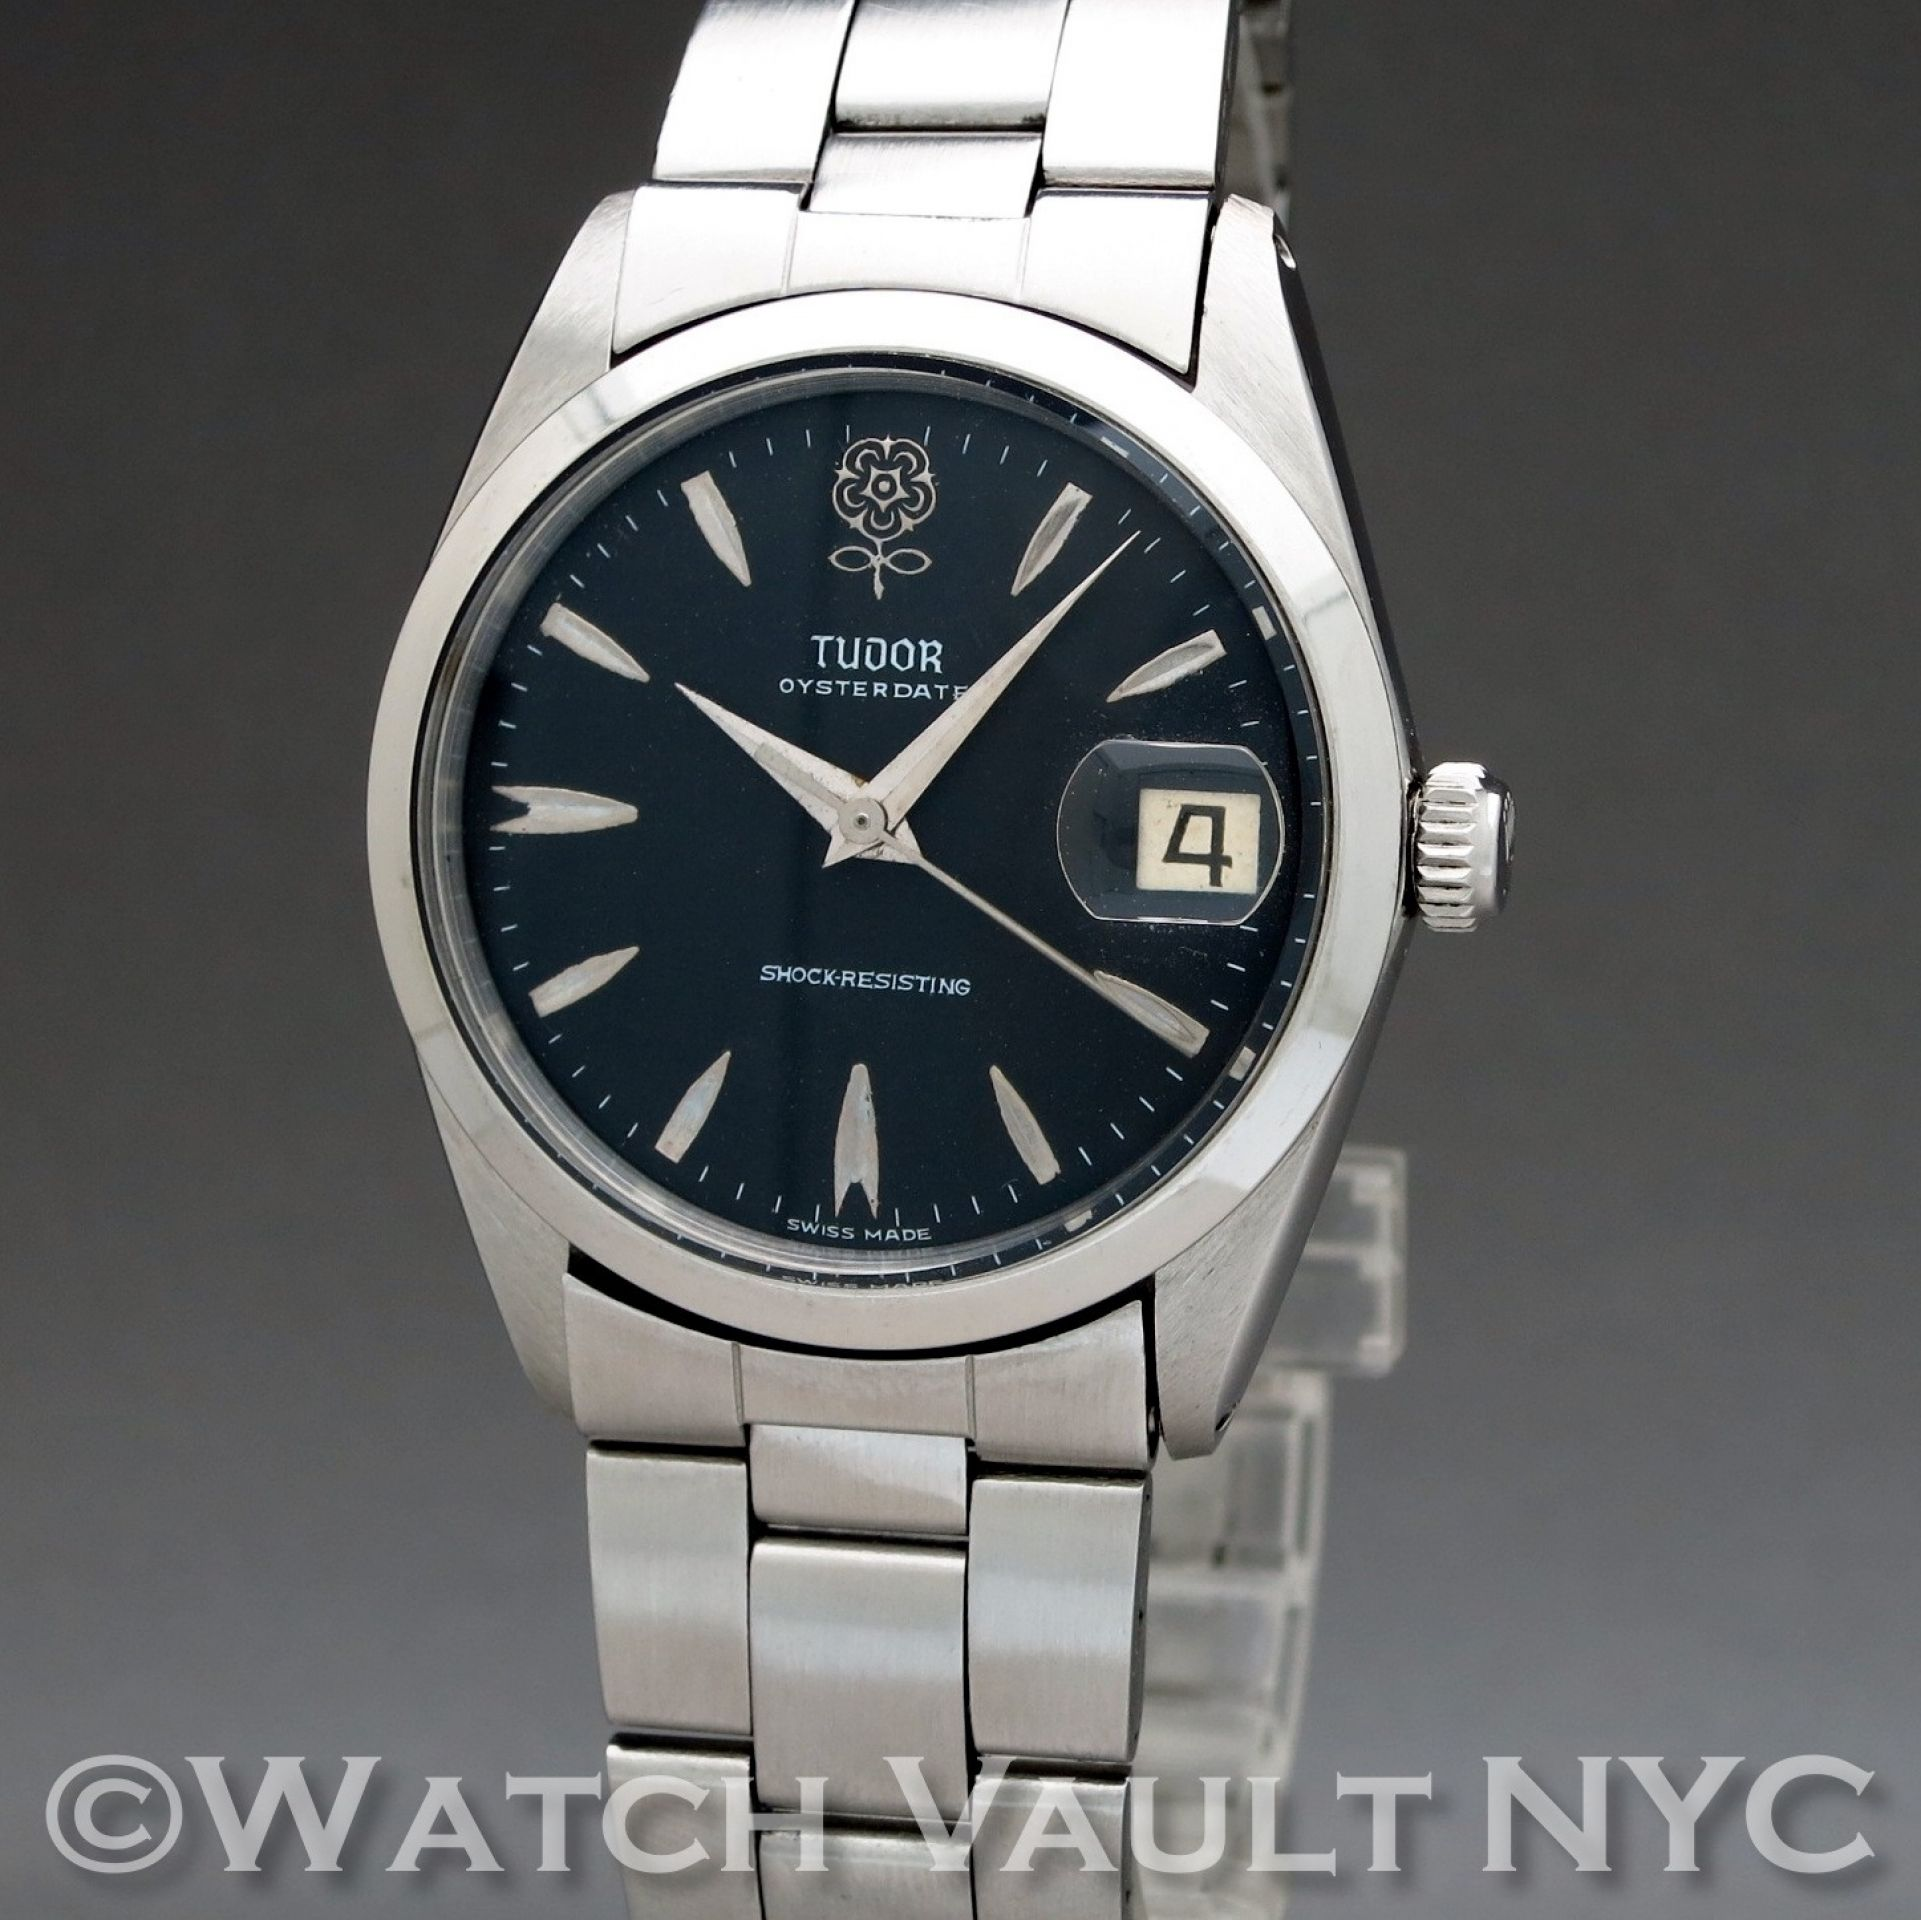 Tudor Oyster Date 7962 Big Rose 1965 Vintage 34mm Manual RE101